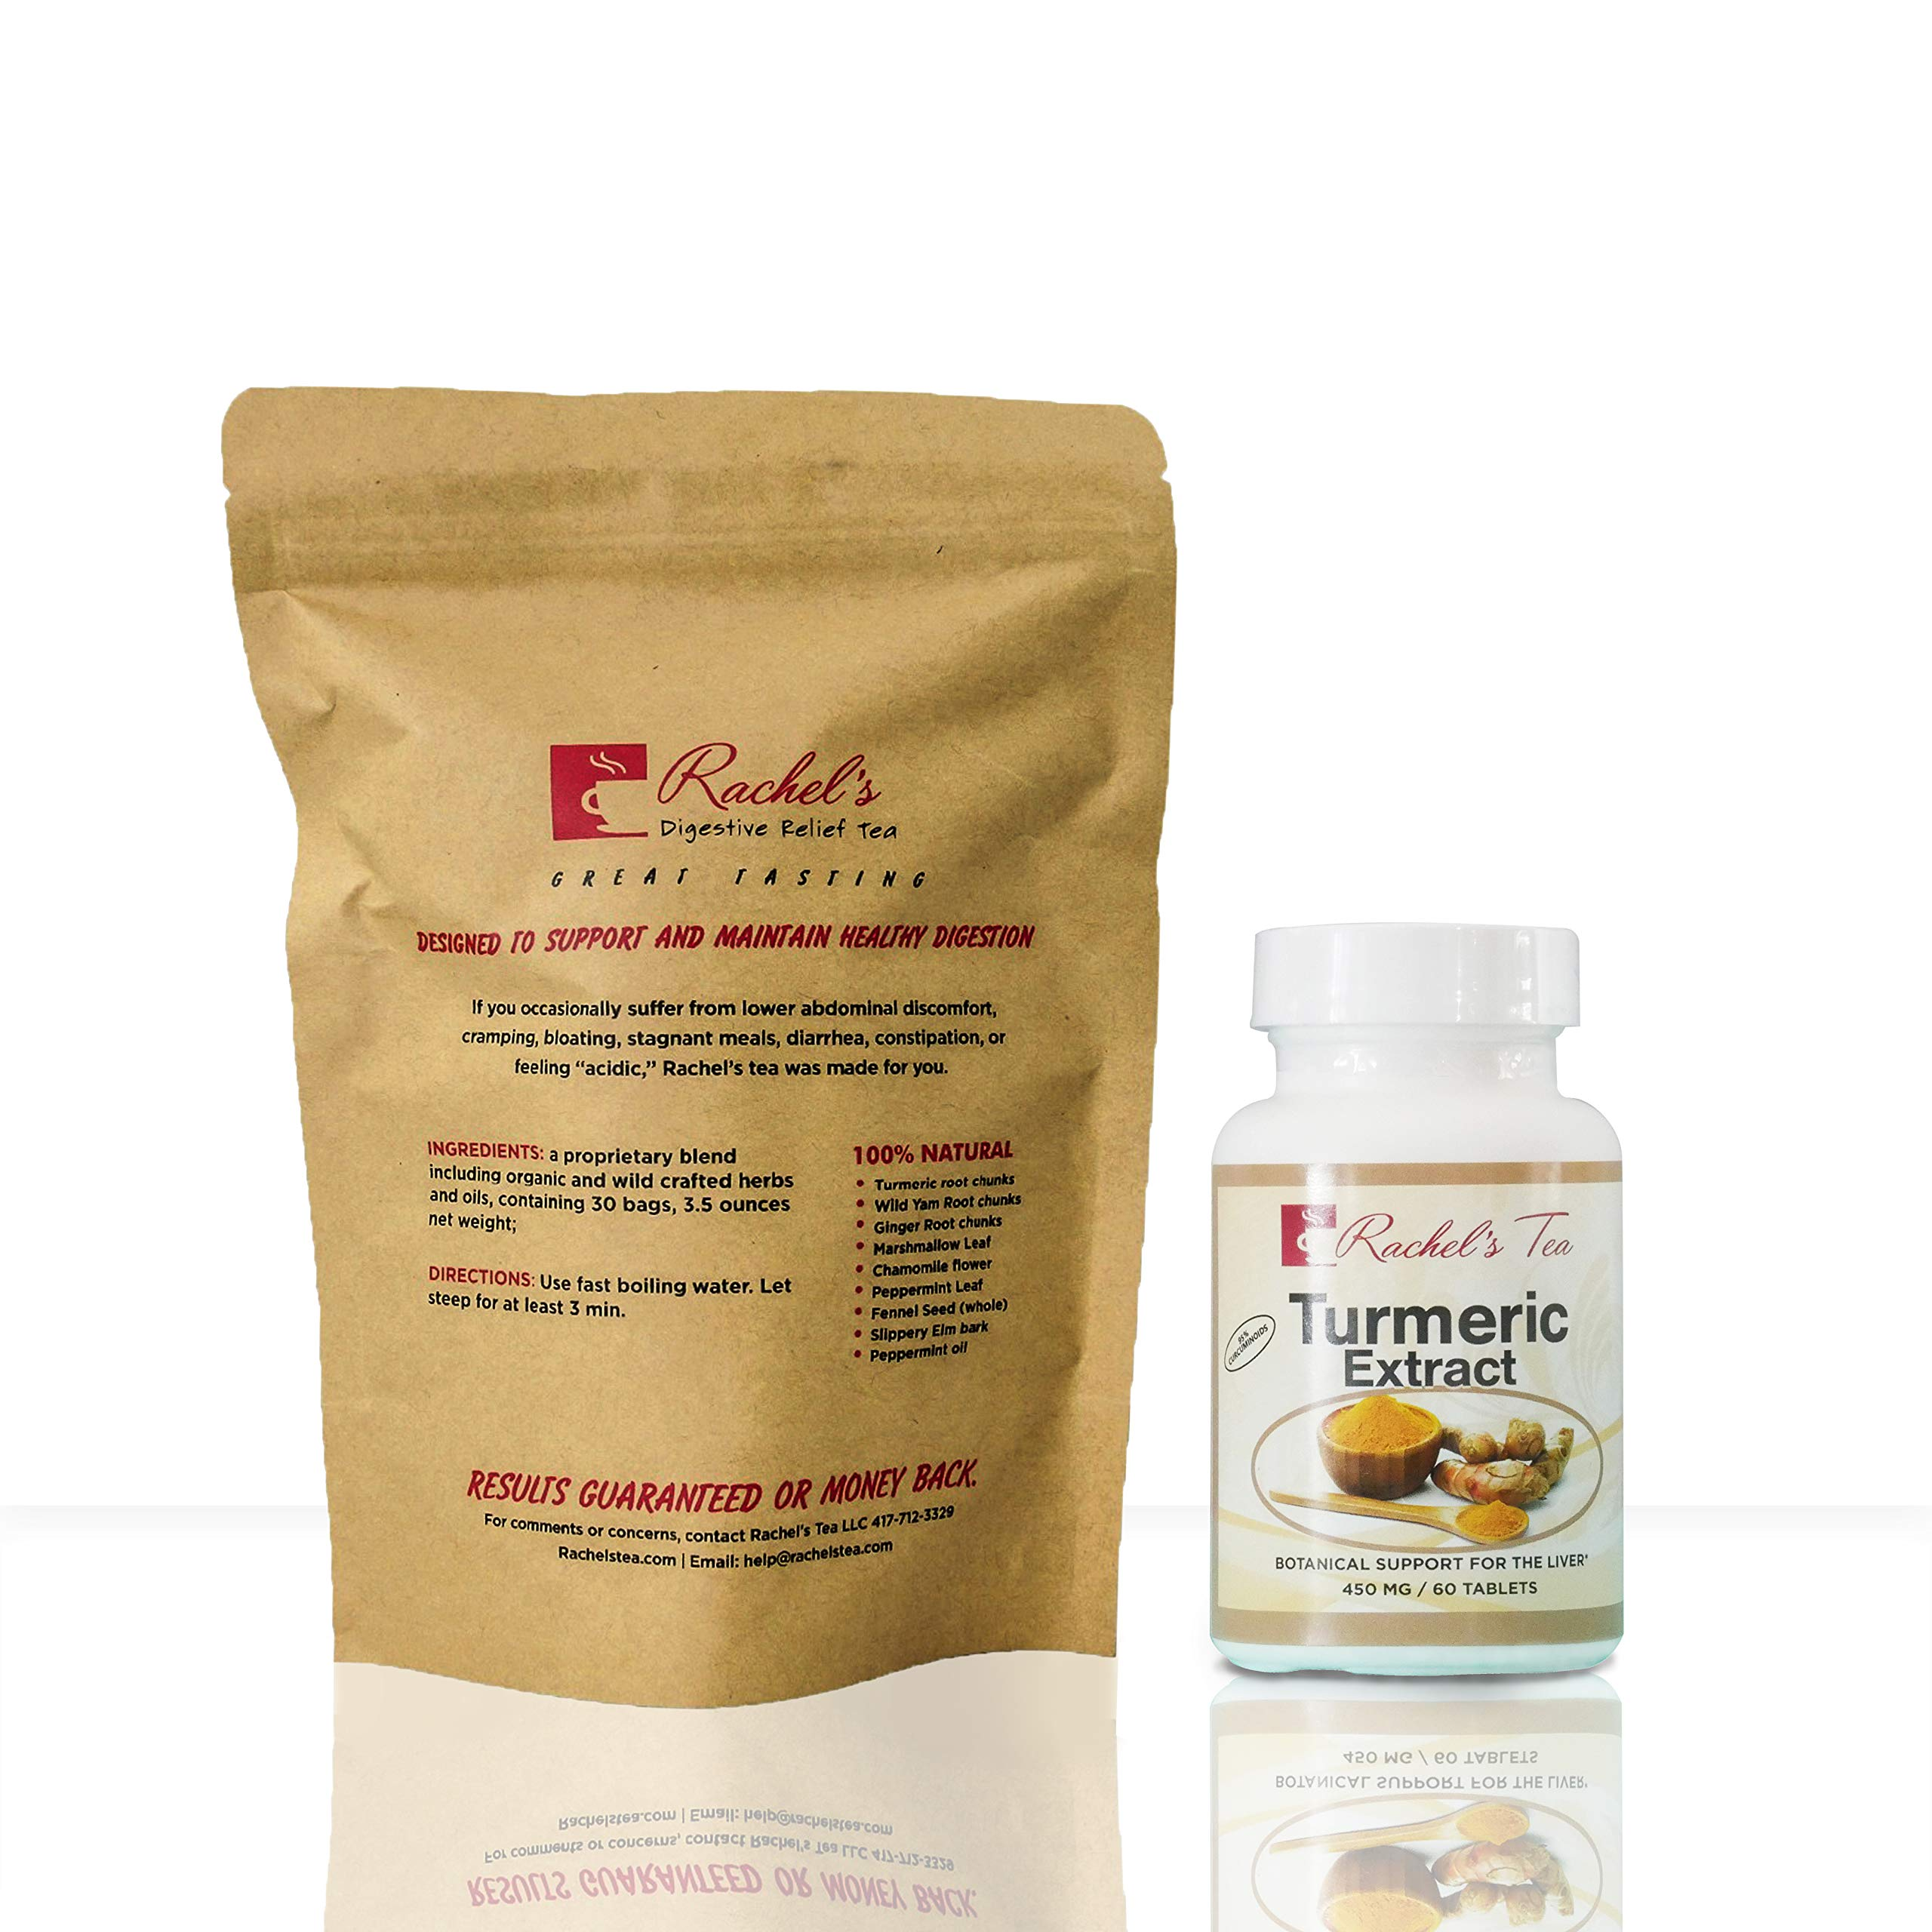 Rachel's Digestive Relief Tea with Turmeric and curcuminoid and Bioperene for absorption soothes digestion, designed for inflammation and digestive comfort